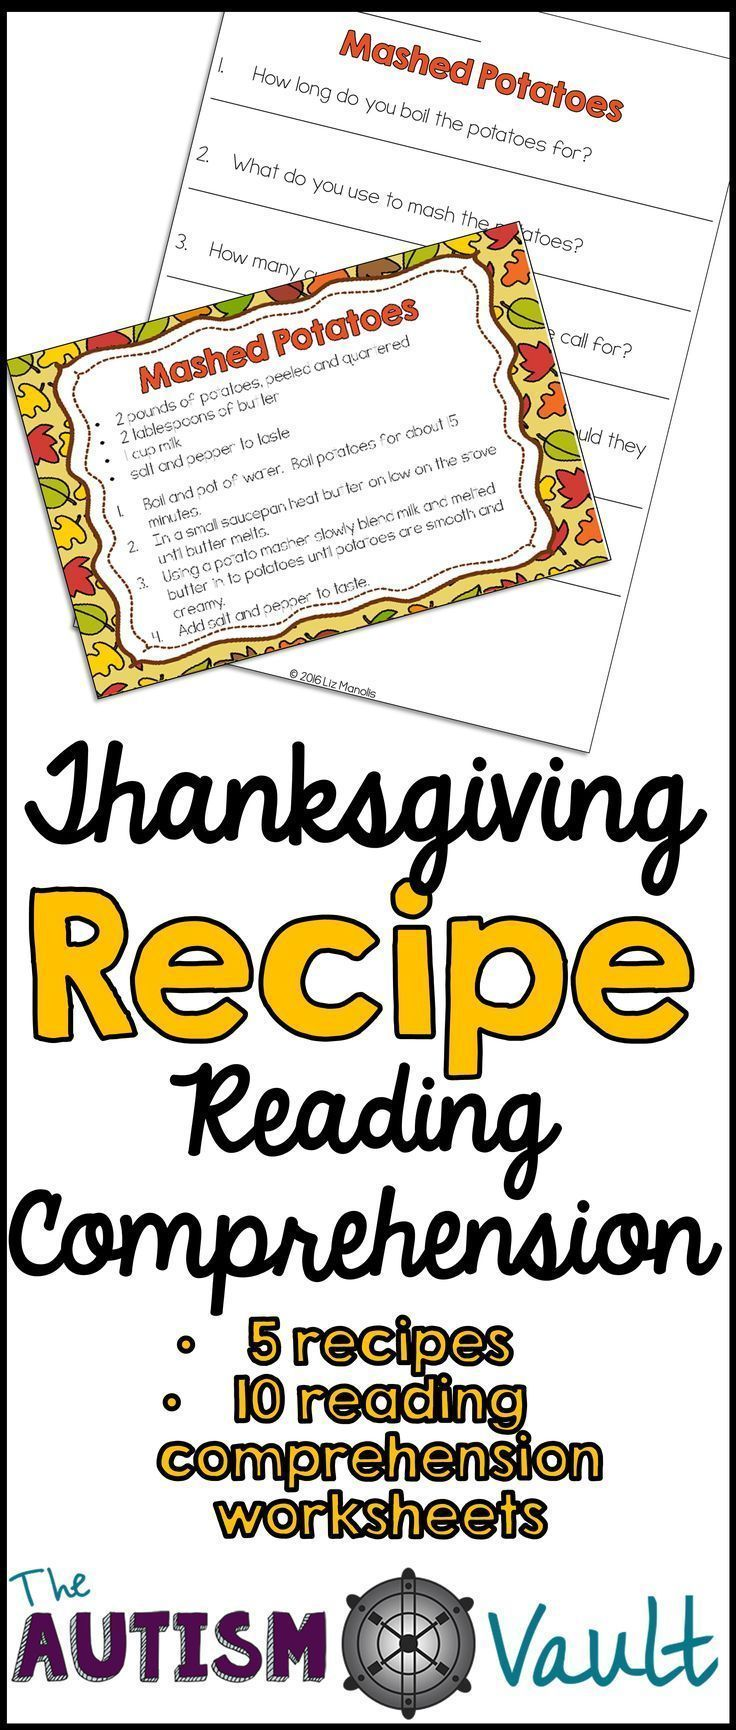 Target Functional Literacy And Life Skills All In One With This Thanksgiving Re Reading Comprehension Worksheets Reading Comprehension Comprehension Worksheets [ 1730 x 736 Pixel ]